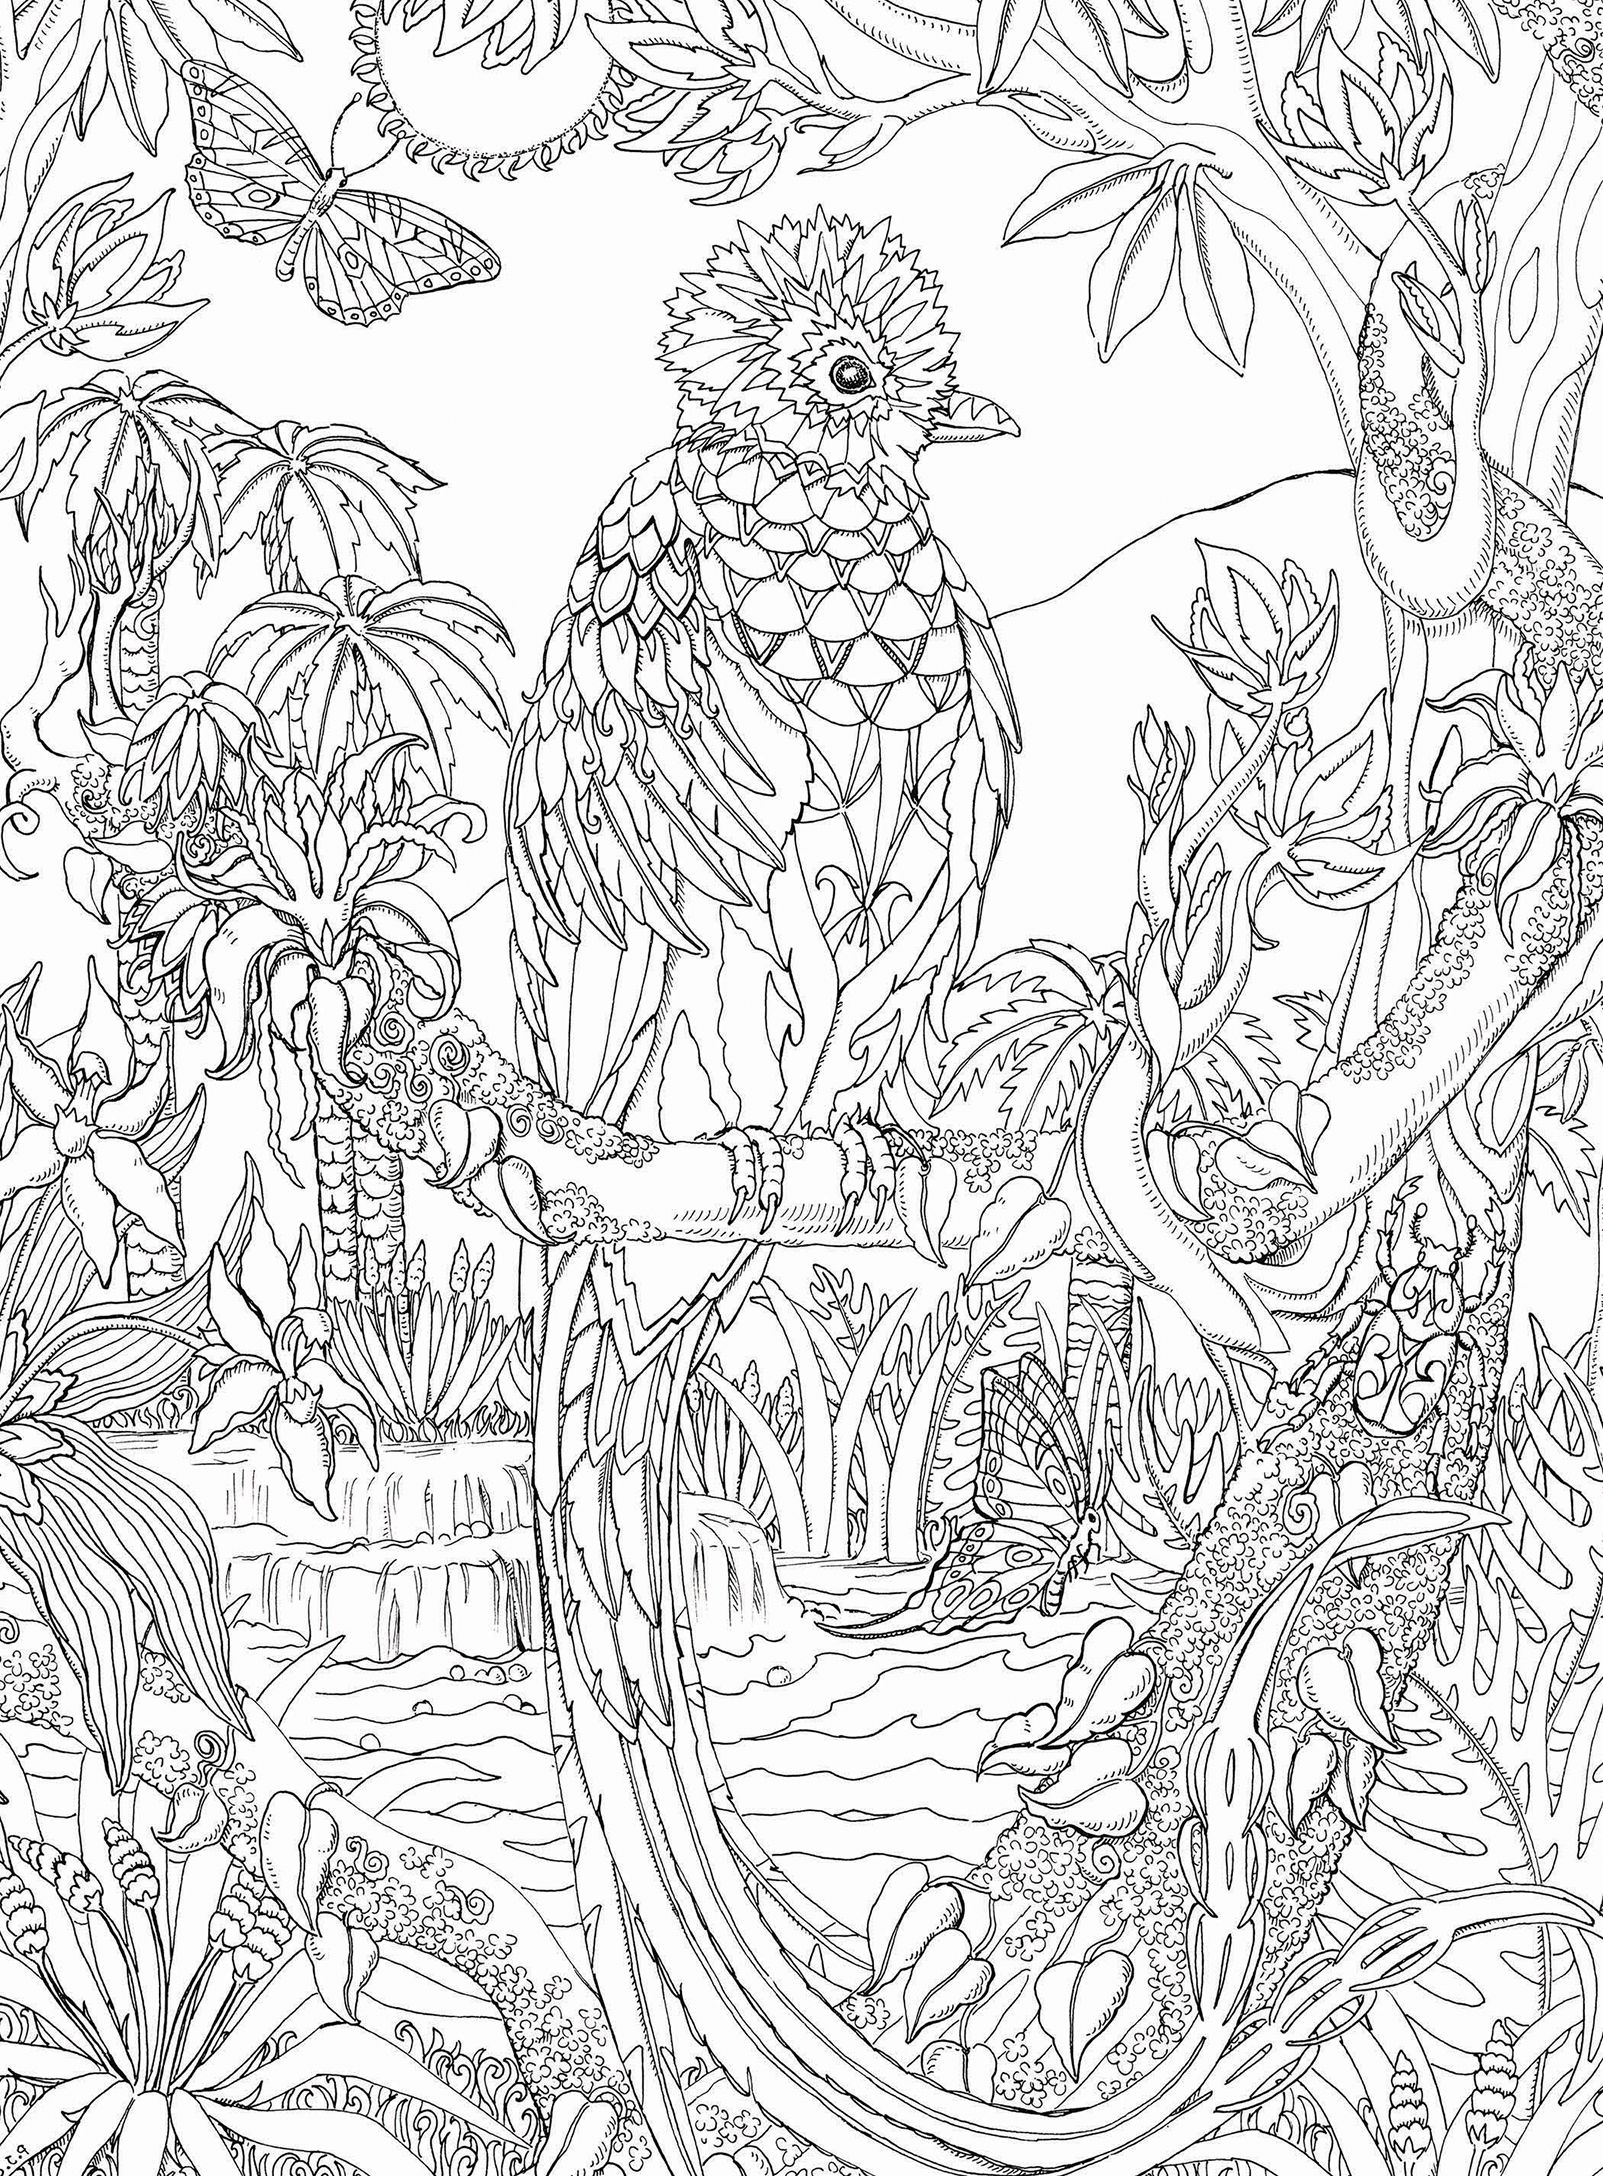 Pin By Barbara On Coloring Parrot Animal Coloring Pages Fairy Coloring Pages Mandala Coloring Pages